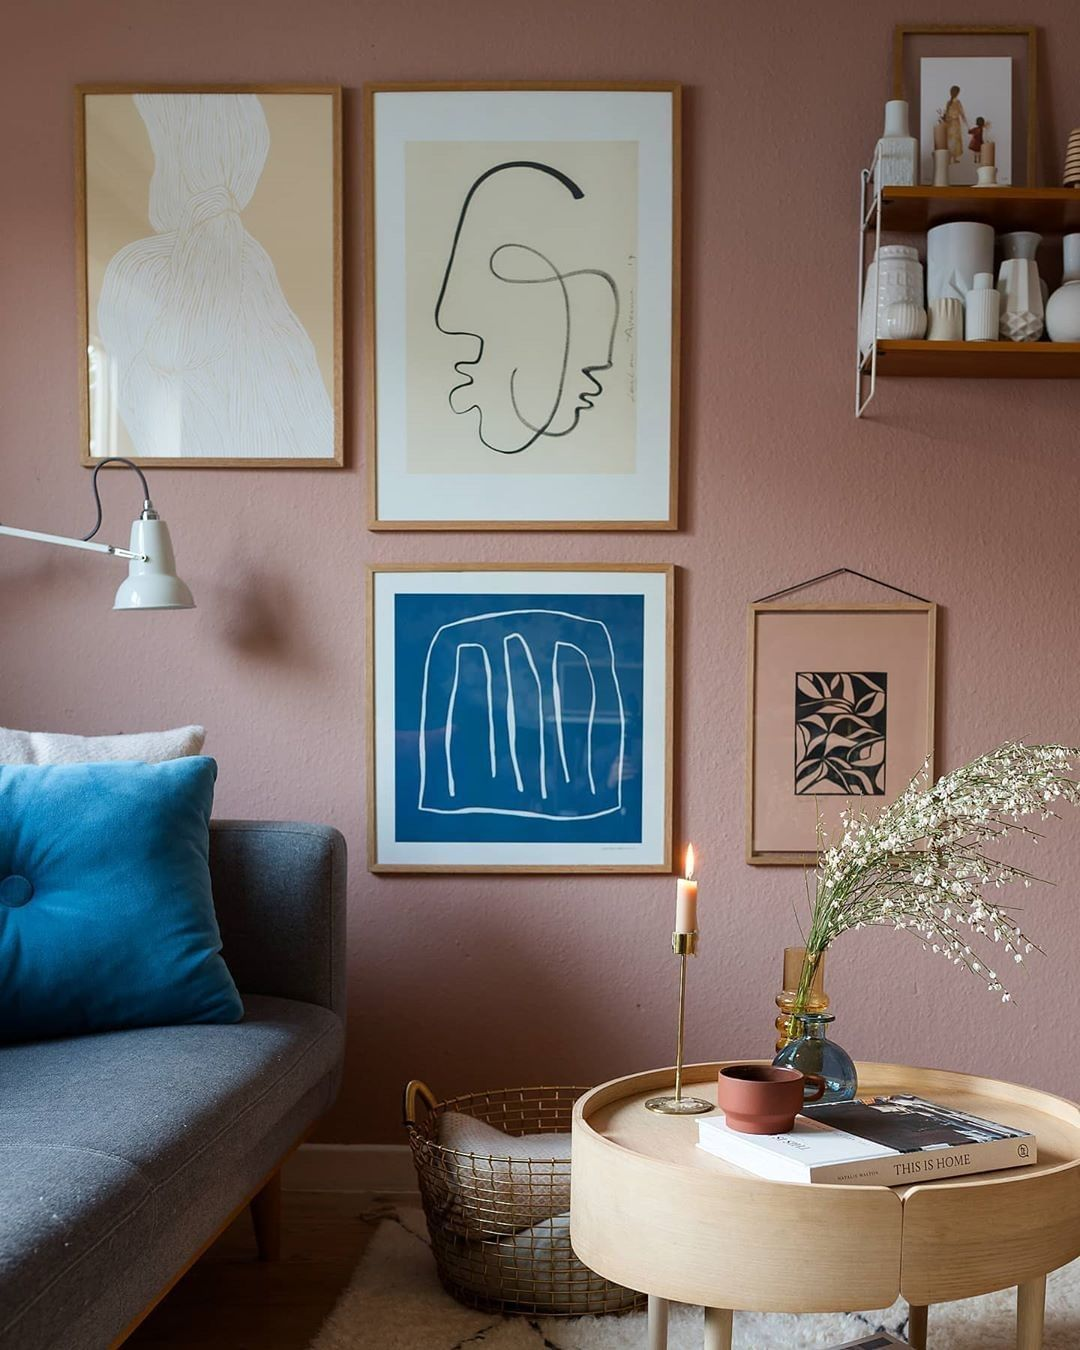 A curated art wall of pretty prints, in the wonderful home of @wunderblumen. All prints available online.⁠.⁠#art #artprint #artposter #tpc #theposterclub #interiordesign #nordicdecor #homestyling #artwall #picturewall #colourfulhome #homedecor